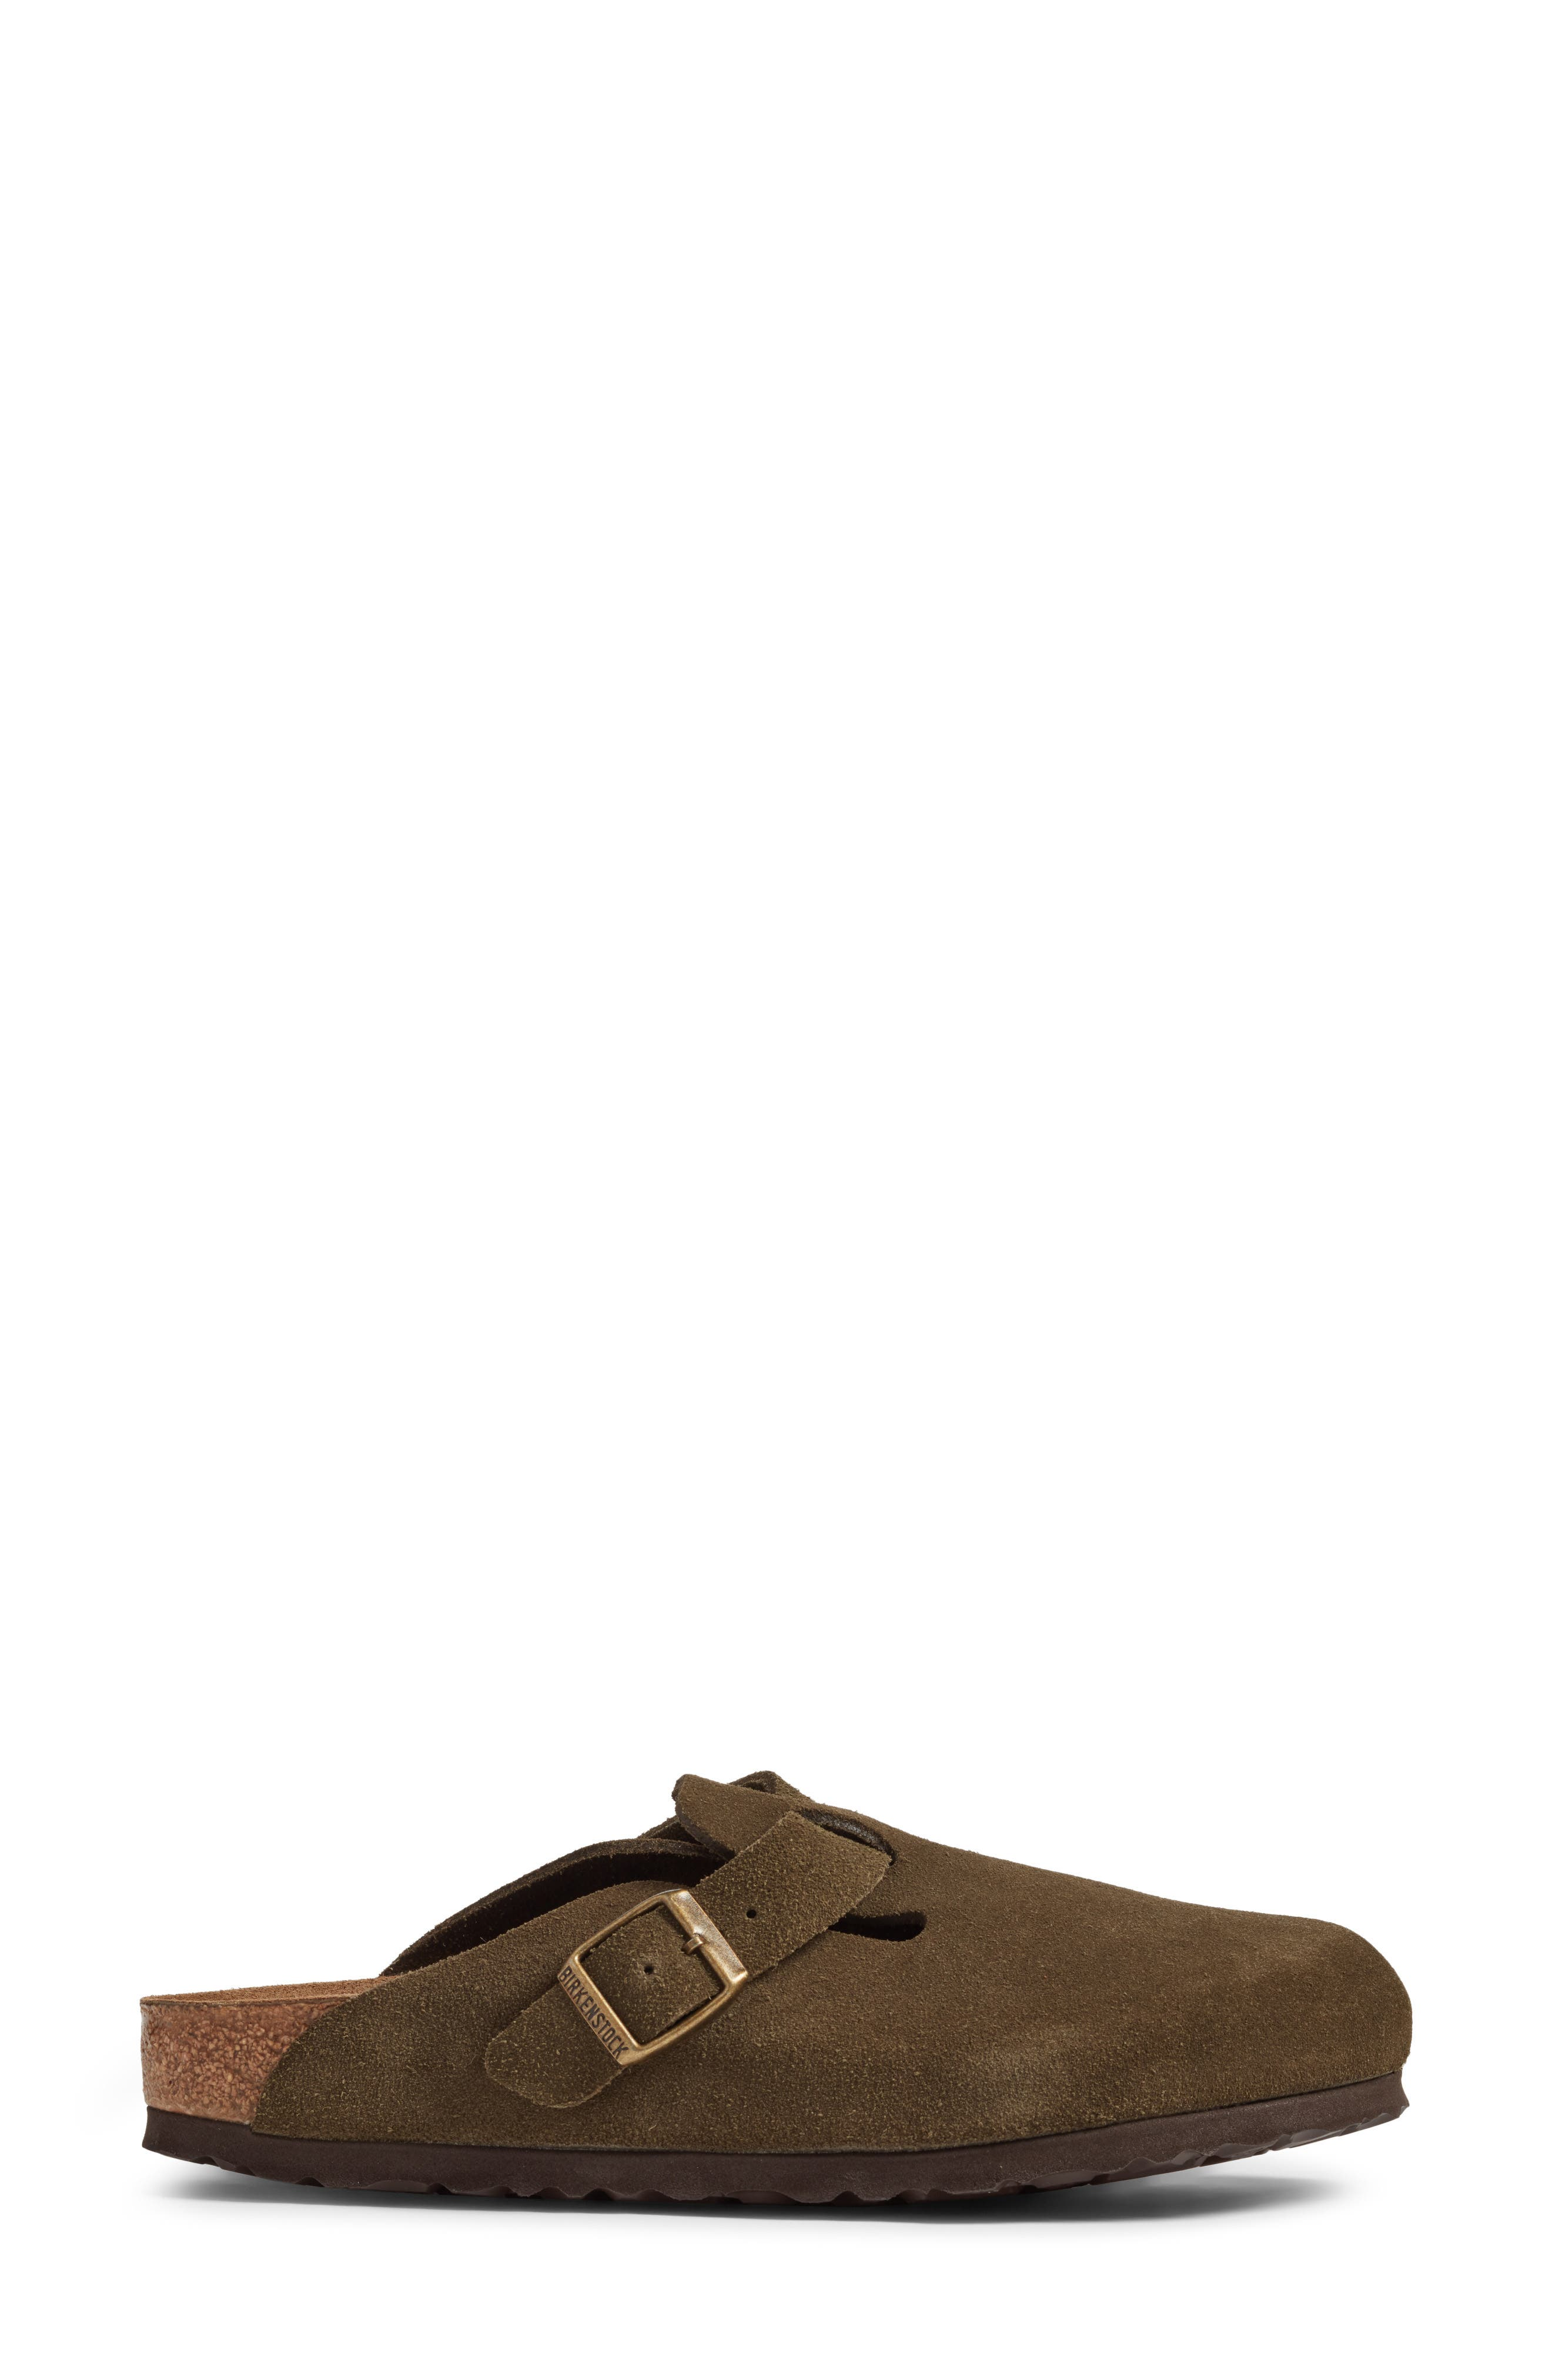 'Boston' Soft Footbed Clog,                             Alternate thumbnail 3, color,                             Forest Suede